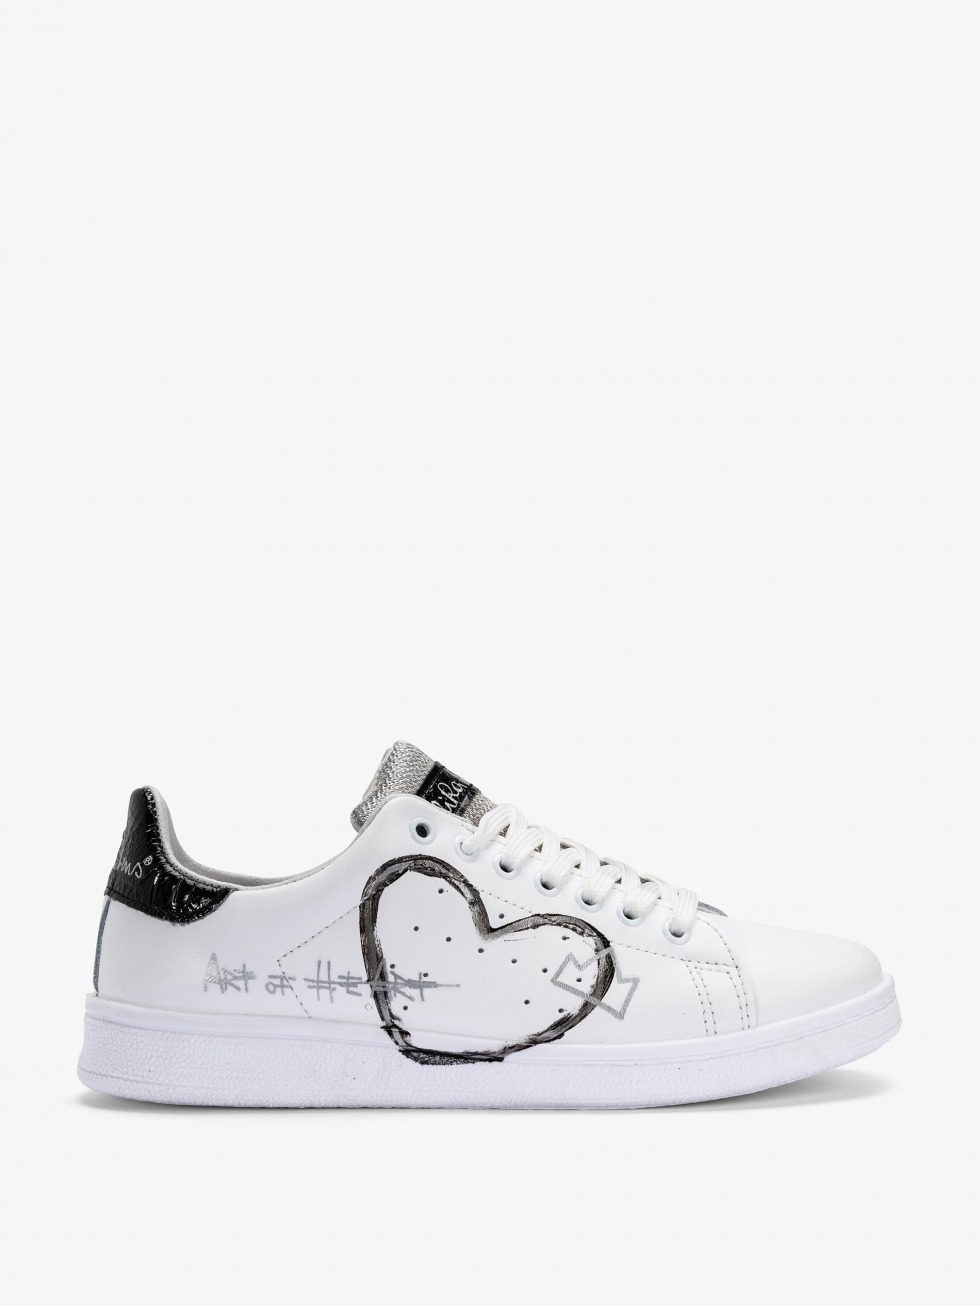 Sneakers Daiquiri - Cuore Space Iron